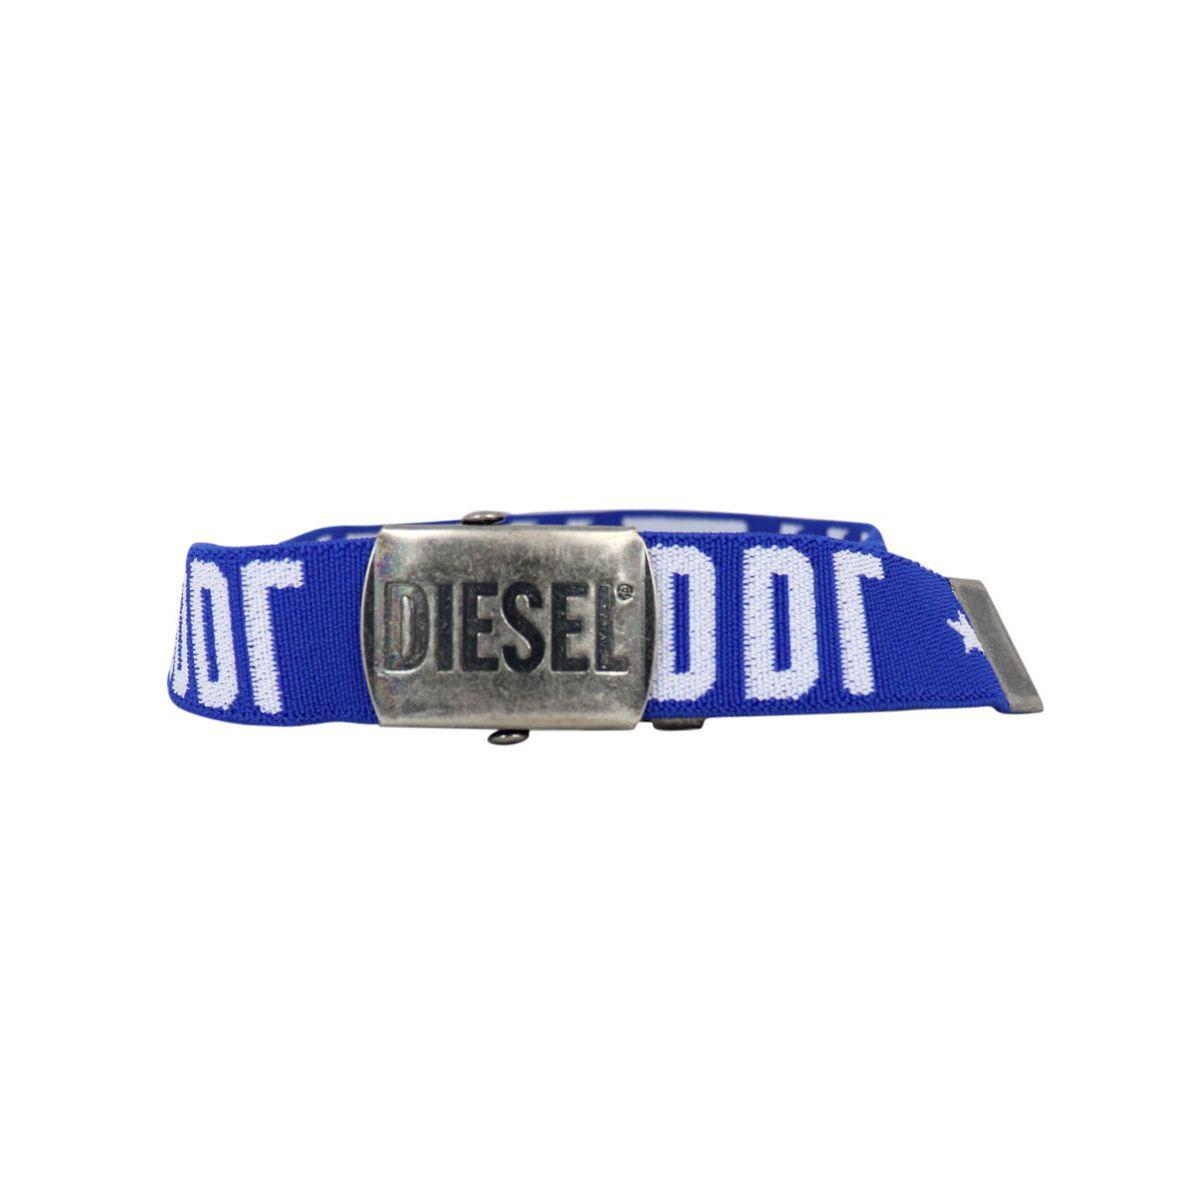 Stretch Barty belt with logo Bluette Diesel